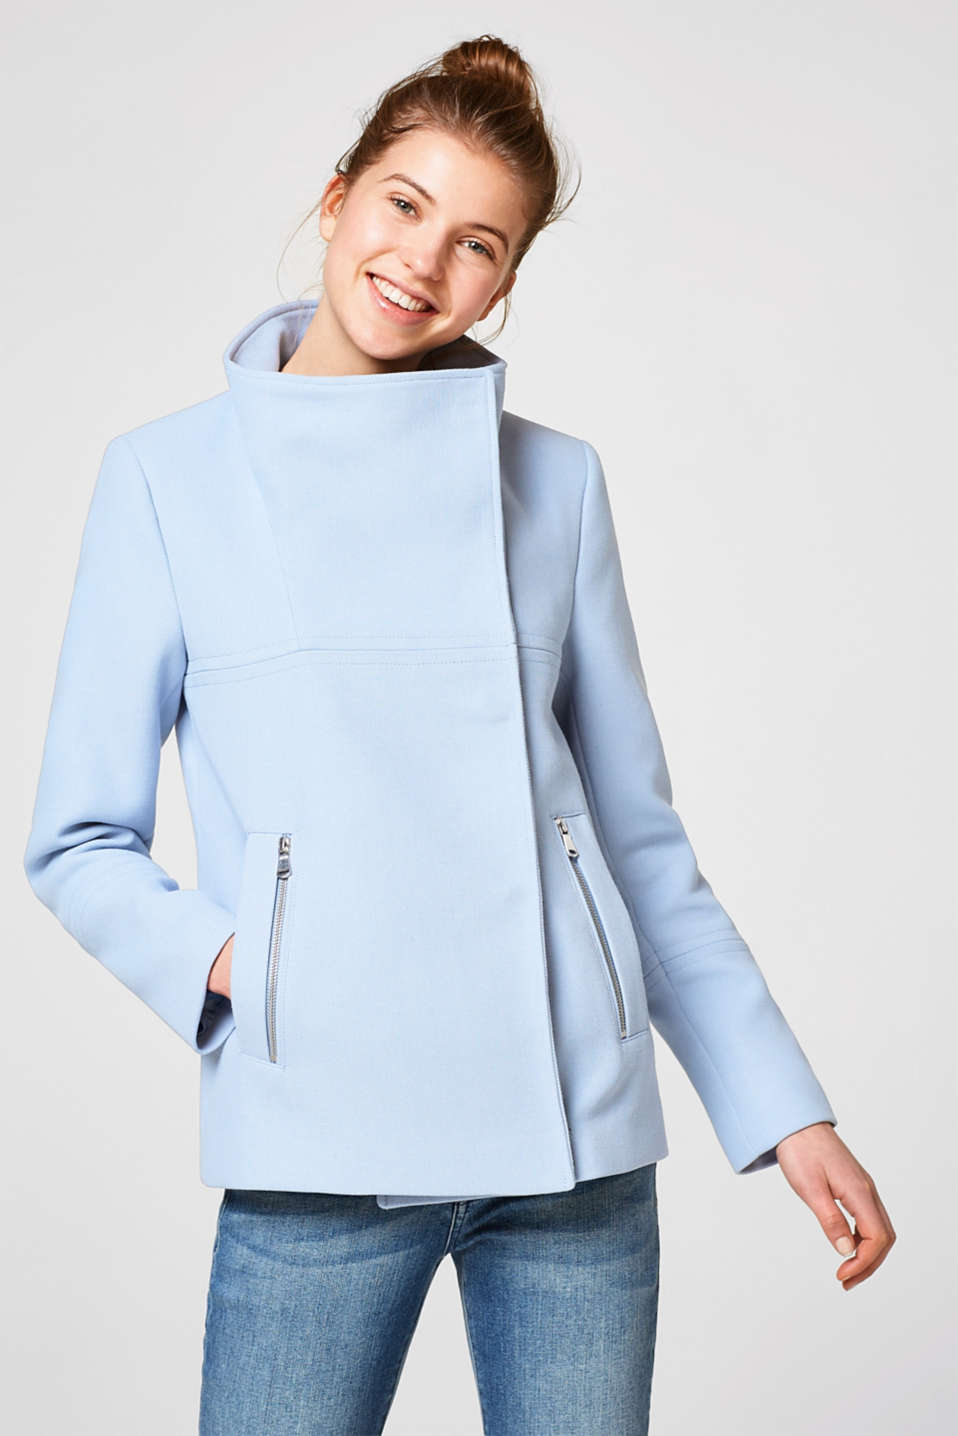 Esprit - Short jacket with a wide stand-up collar